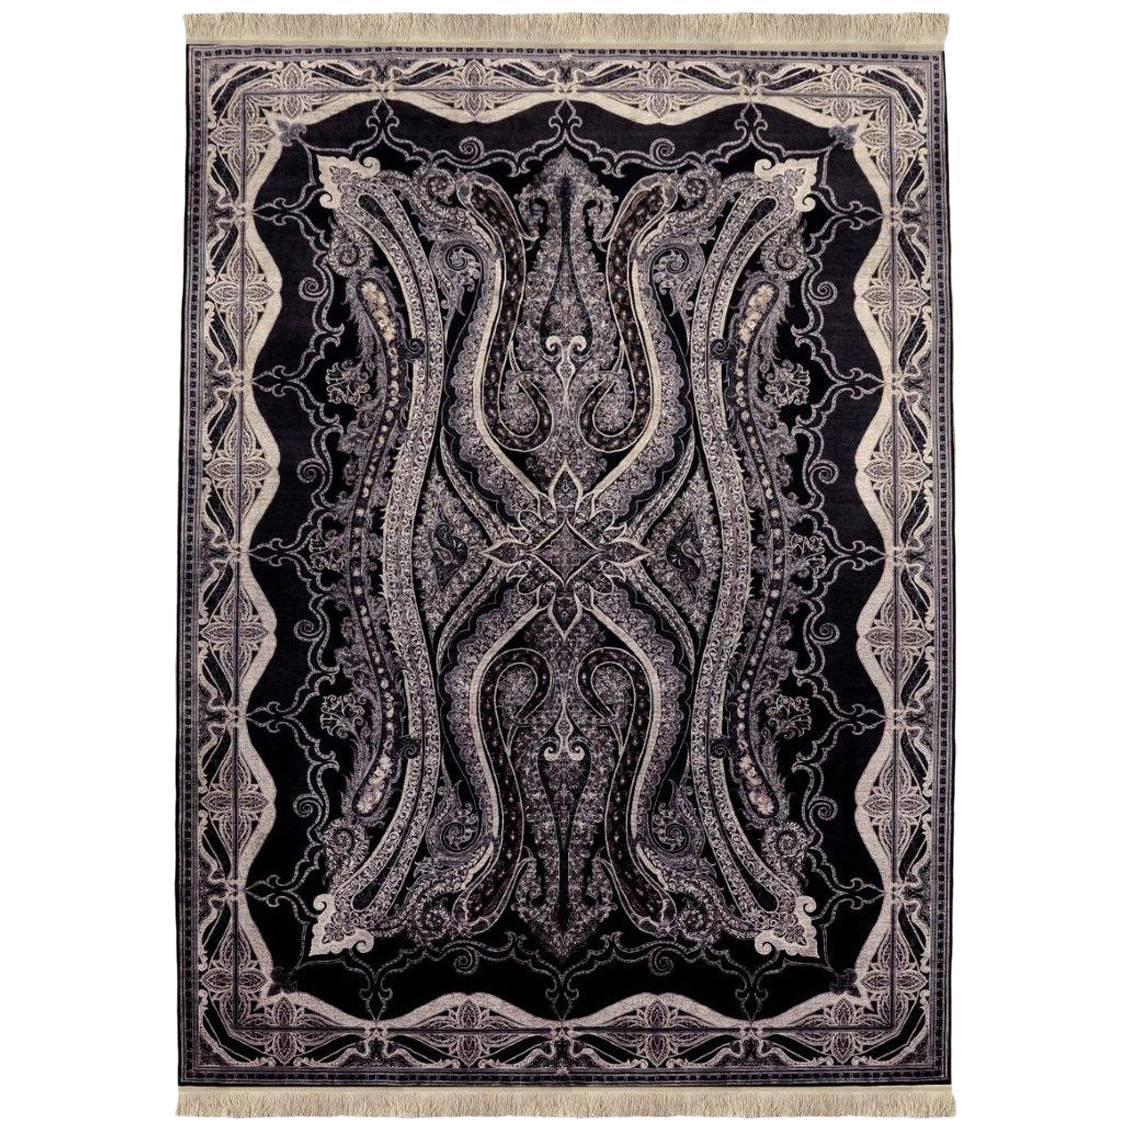 Unique King S Crest Solid Silk Hand Made Turkish Rug By Cinar For At 1stdibs